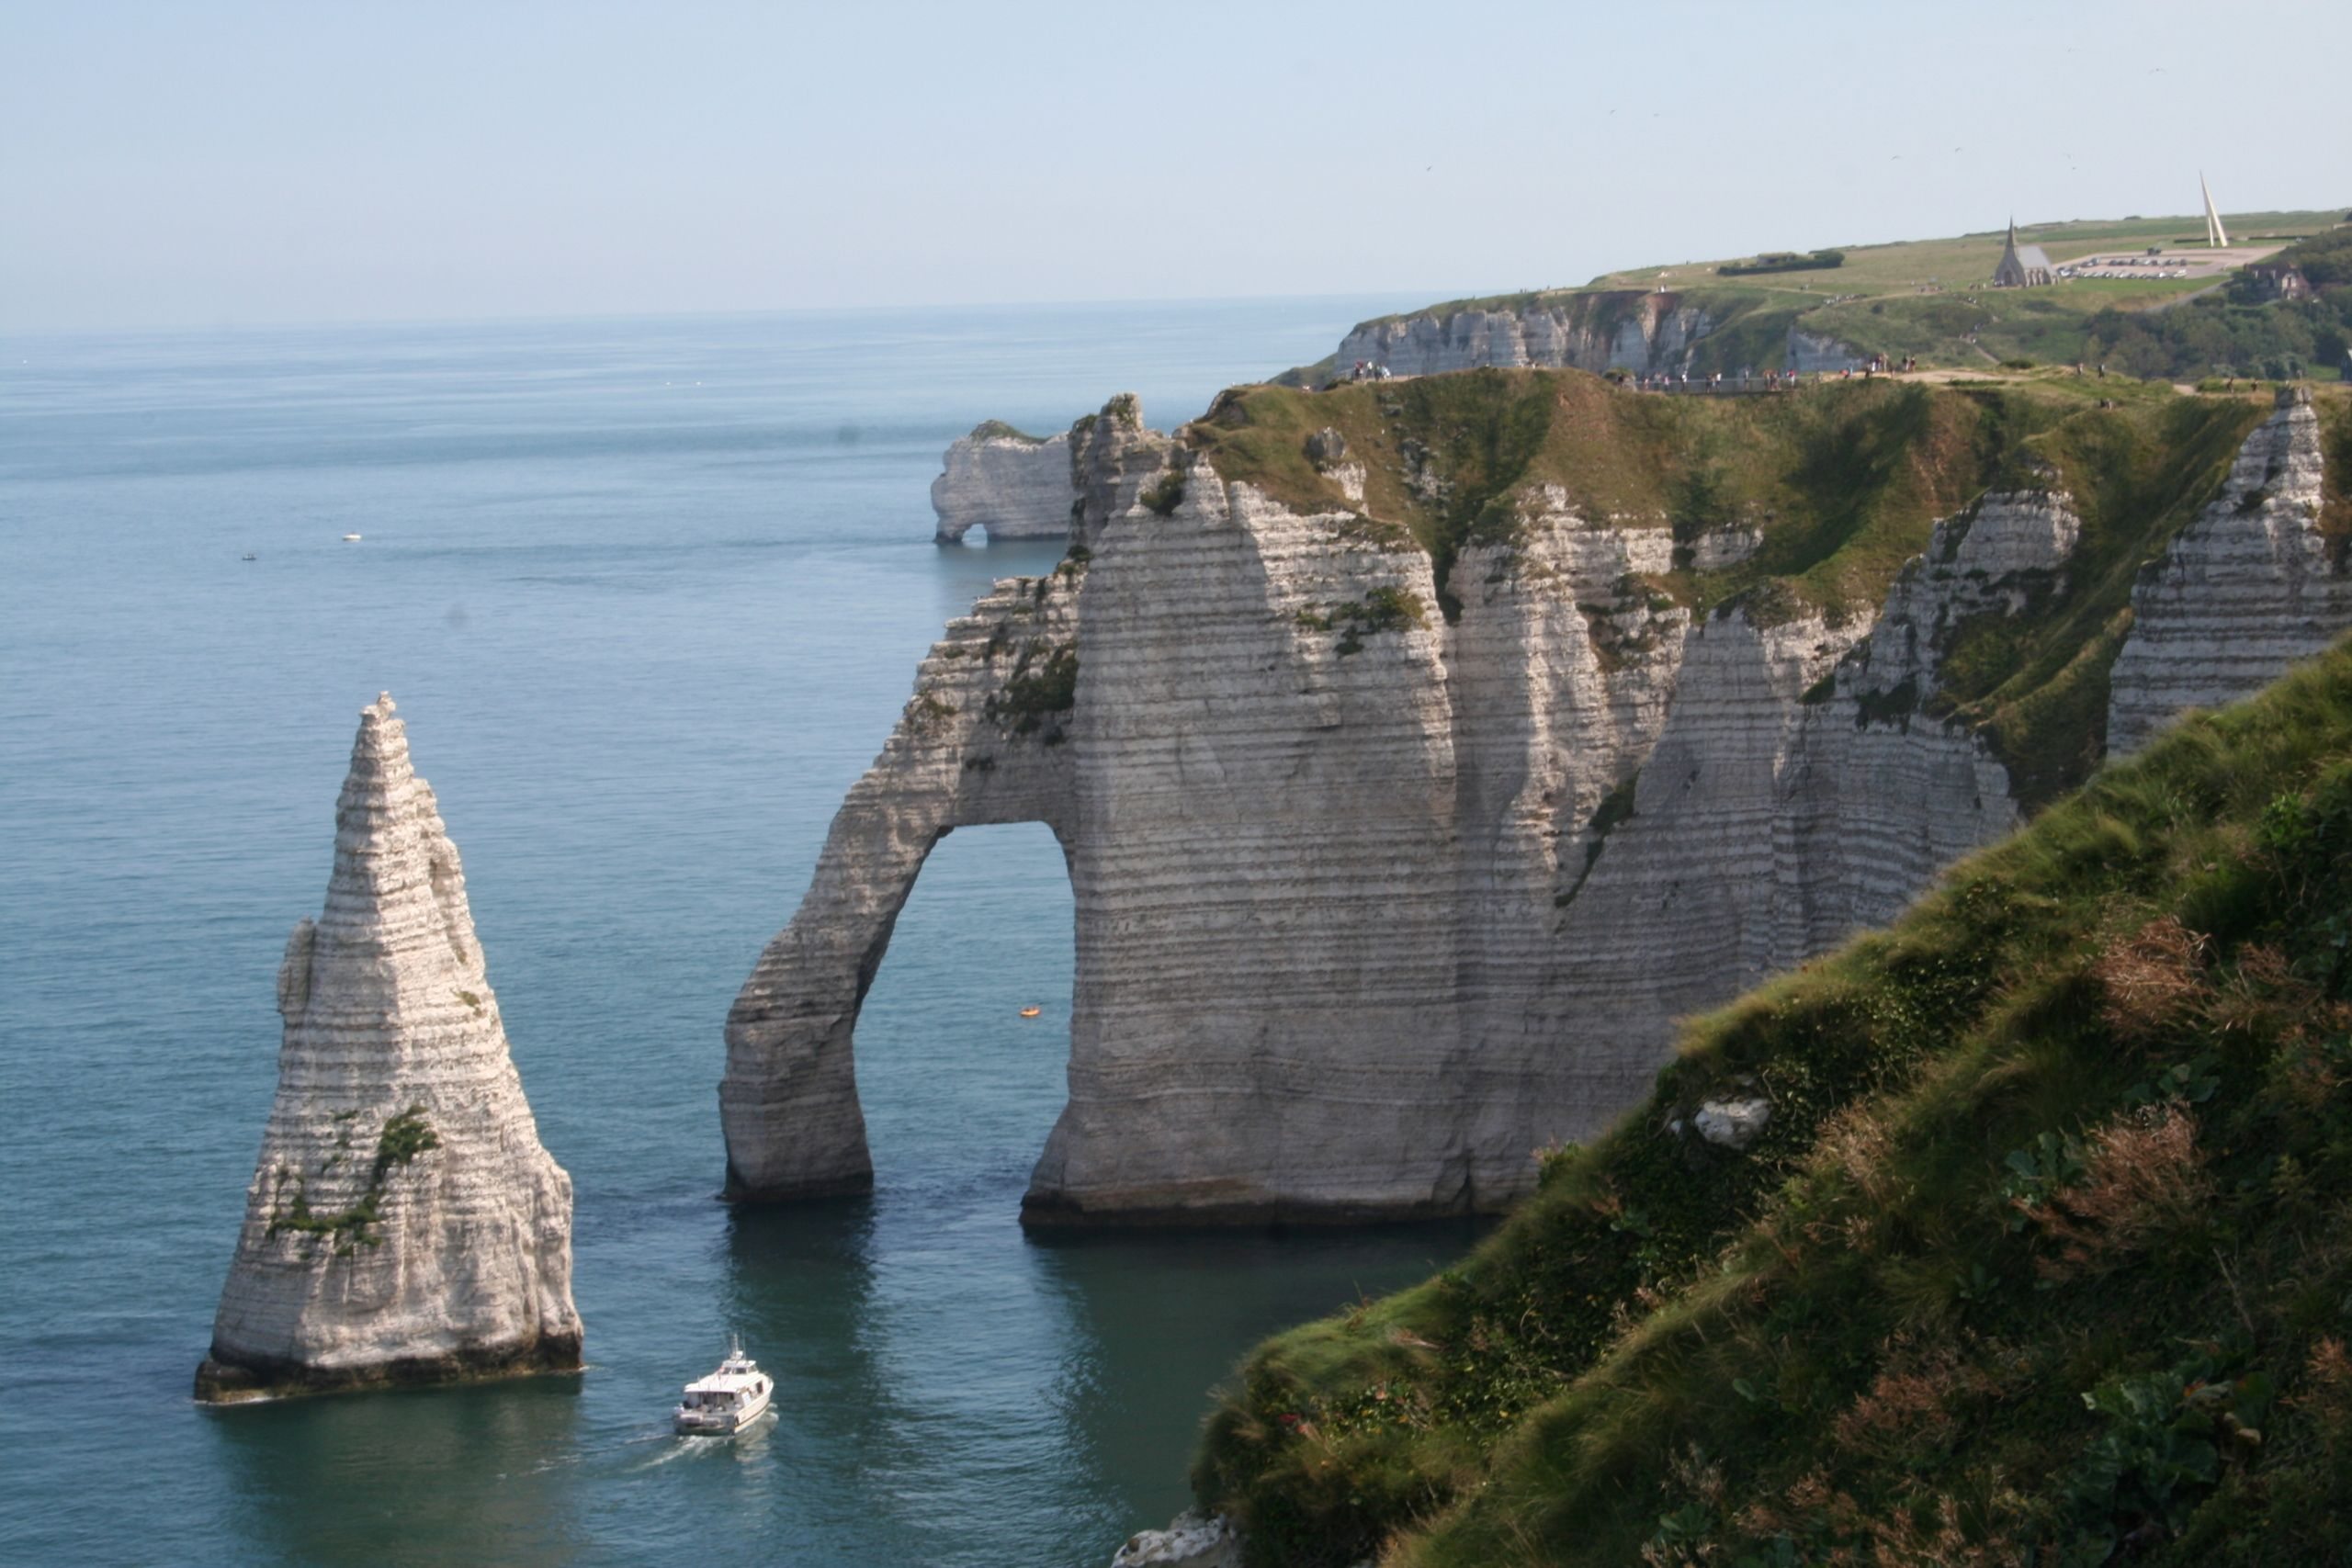 "Take a hike through Étretat, France and stop to gaze at its world-renowned cliffs, including 3 natural arches and the pointed ""needle"". These cliffs and the associated resort beach attracted artists including Eugène Boudin, Gustave Courbet and Claude Monet, and were featured prominently in the 1909 Arsène Lupin novel The Hollow Needle by Maurice Leblanc. #JetsetterCurator"